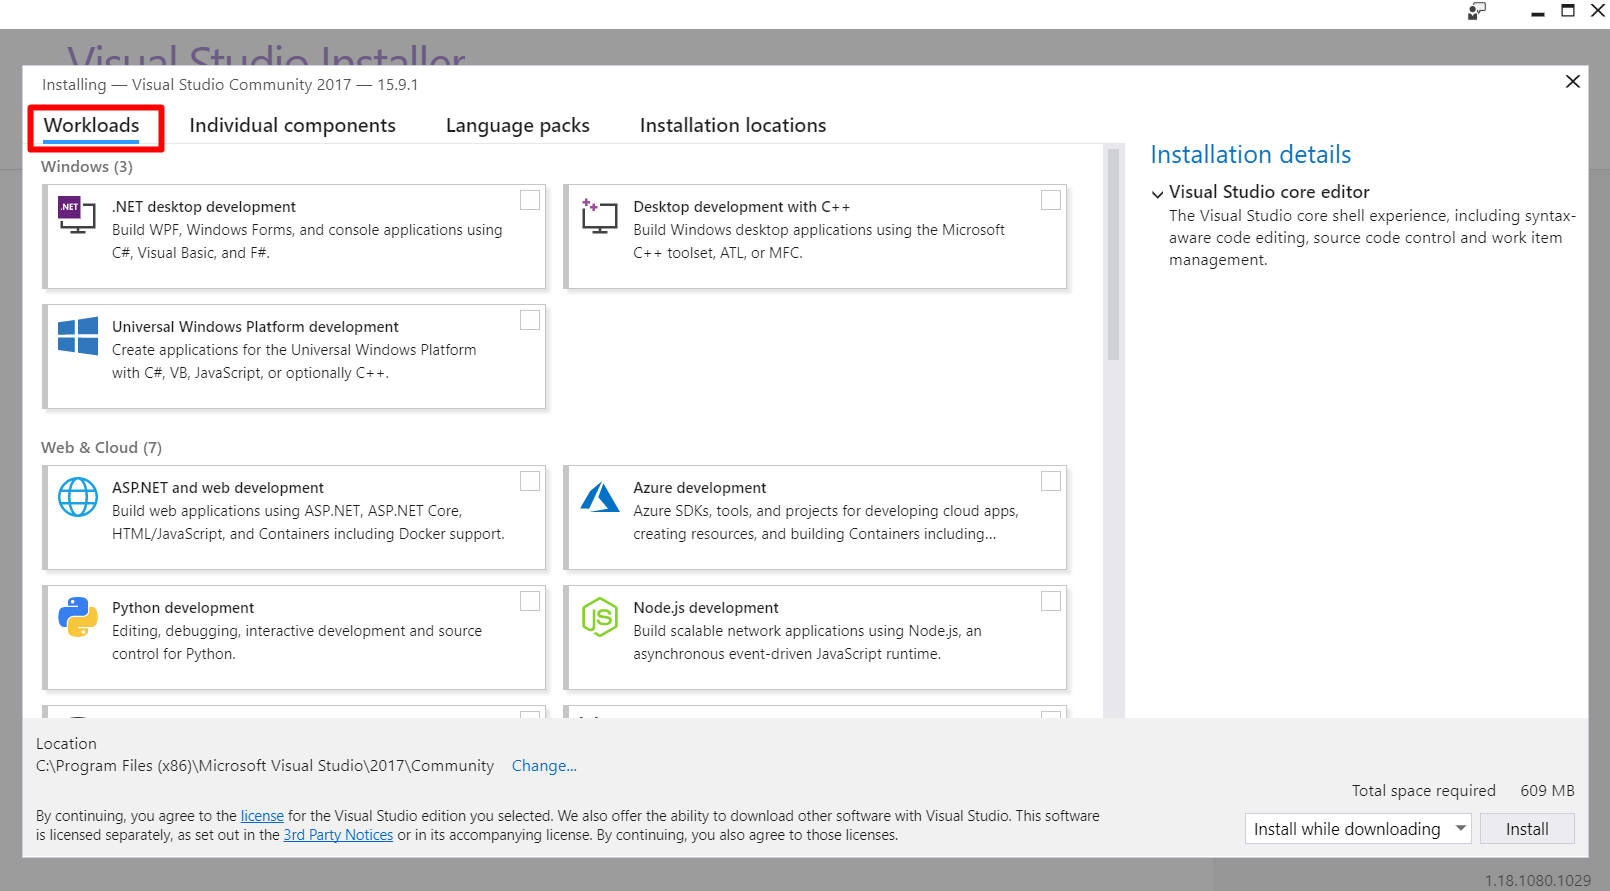 installing workloads Visual Studio 2017